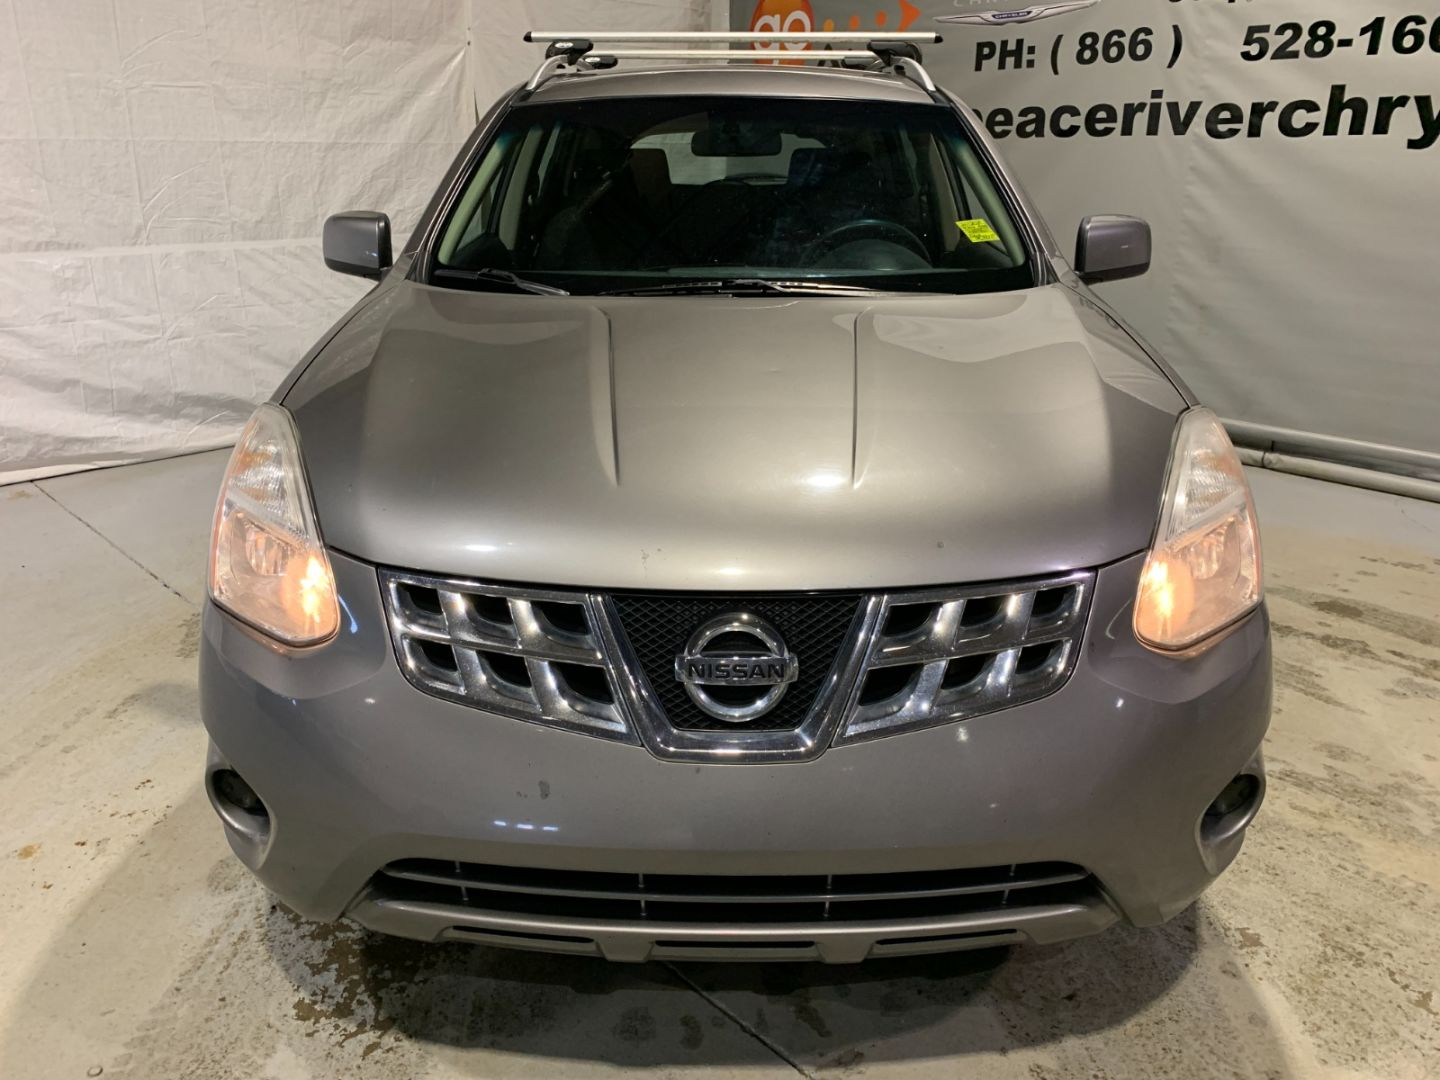 2012 Nissan Rogue S for sale in Peace River, Alberta